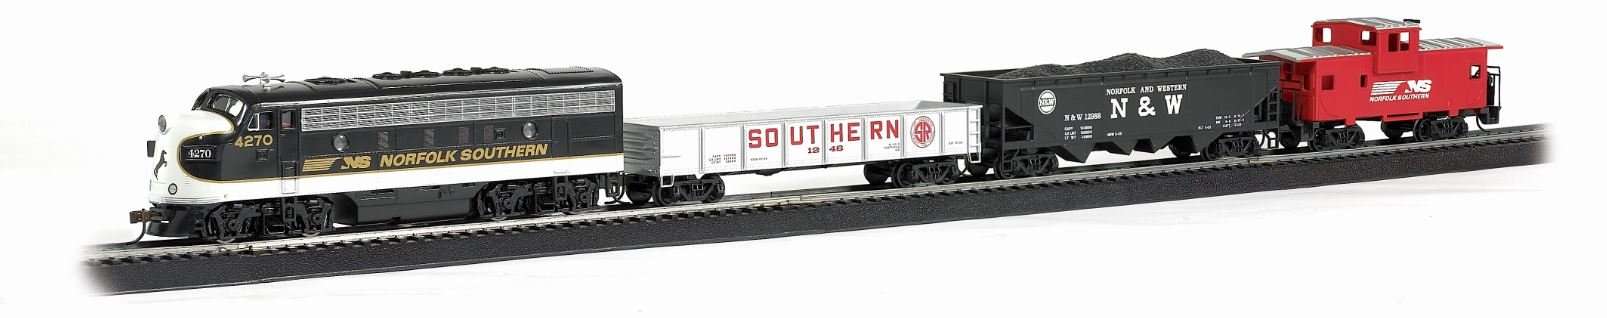 Bachmann Trains Thoroughbred Ready-to-Run HO Scale Train Set by Bachmann Trains (Image #3)